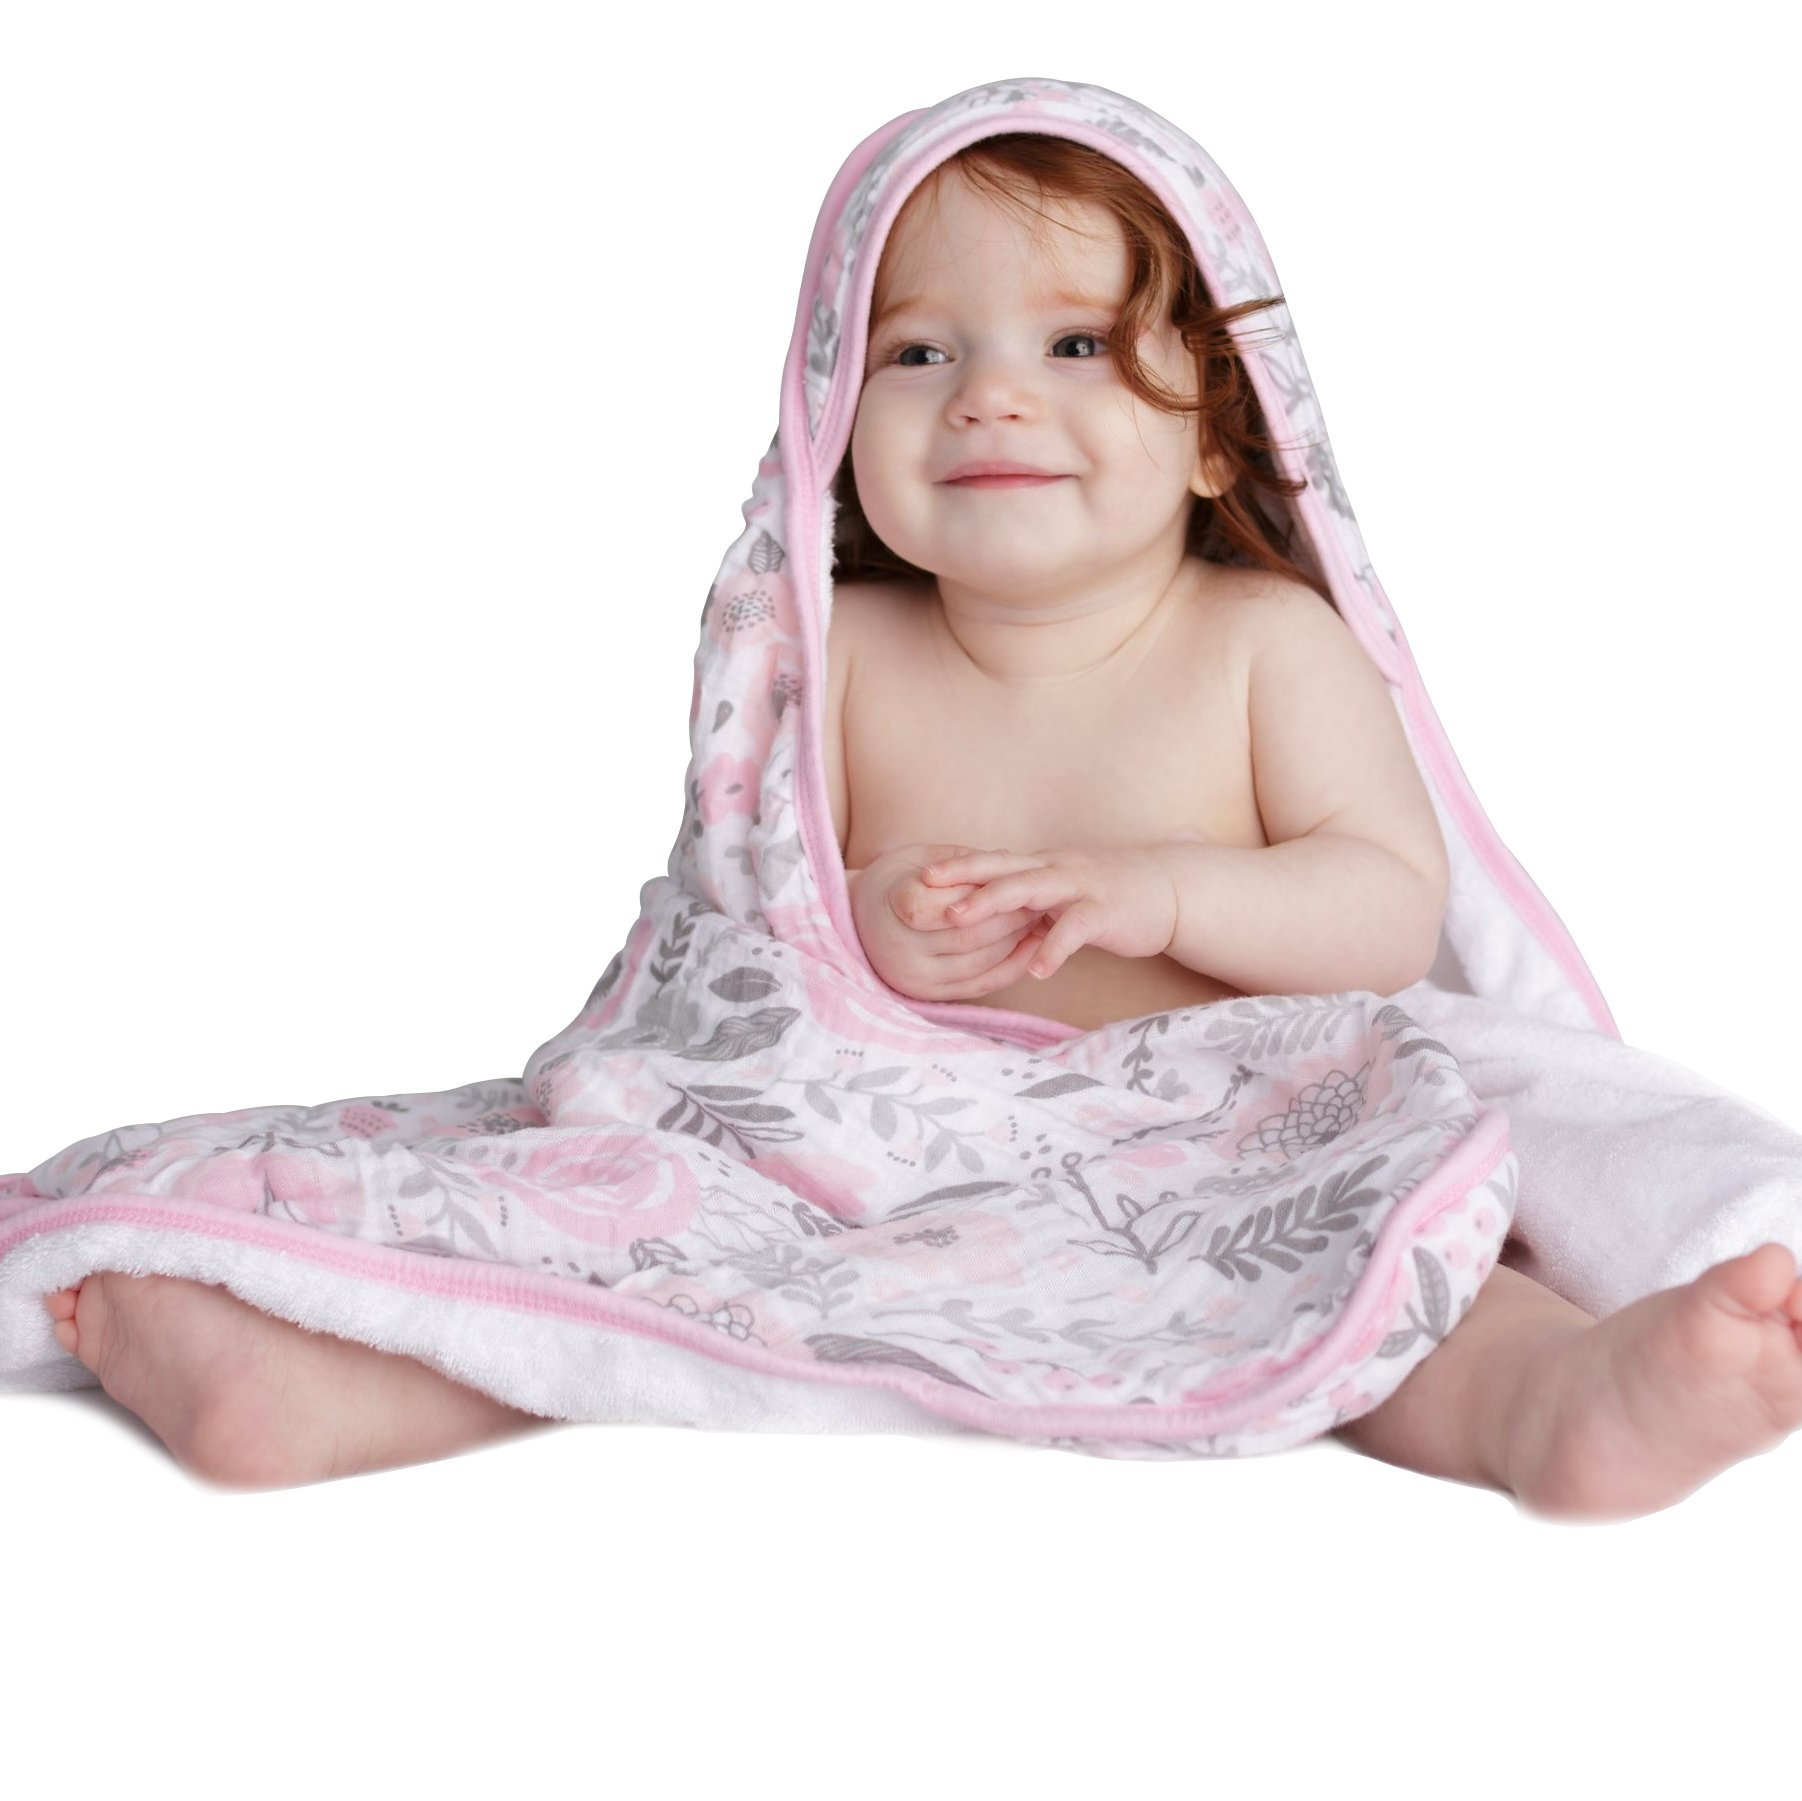 Luxury Kids Hooded Towel by Lulu Love Baby Blossom - Perfect for Infants and Babies - 100% Cotton Muslin with Extra Soft Rayon from Bamboo Liner - 33 x 33 inches - Bonus Washcloth - Shower Gift by Lulu Love Baby